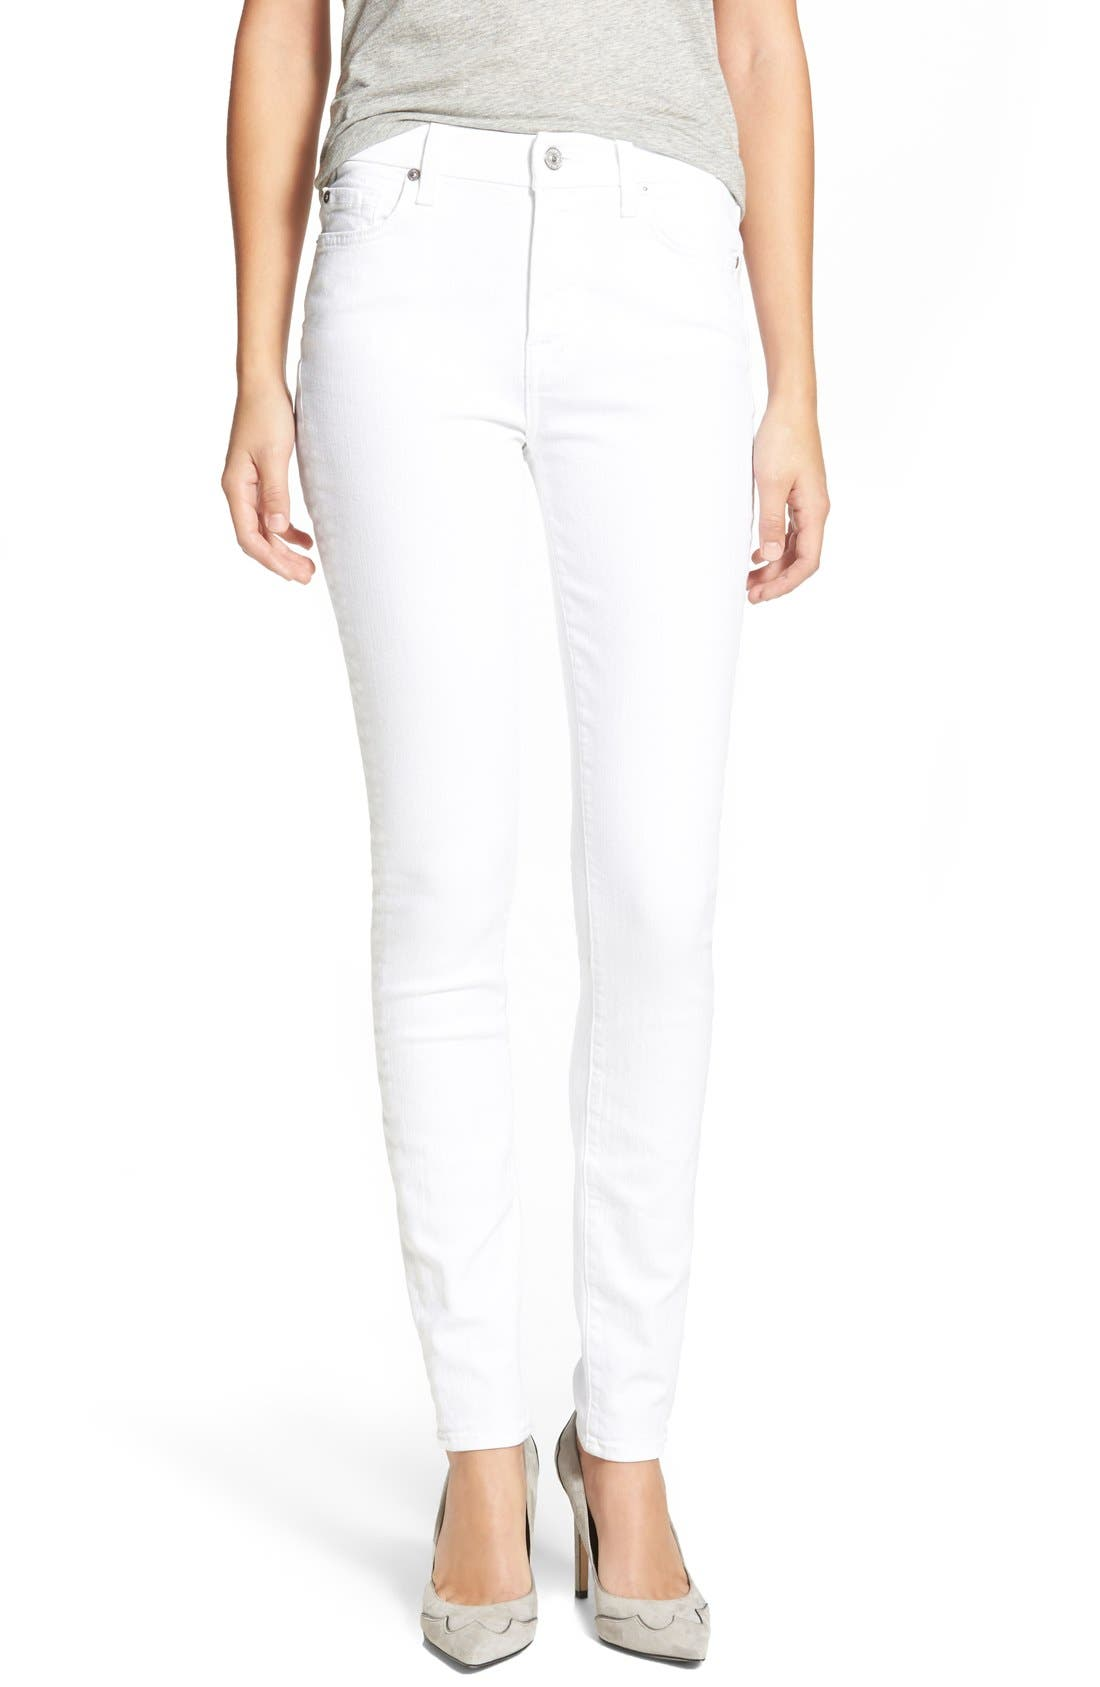 'The Skinny' Skinny Jeans,                             Main thumbnail 1, color,                             Clean White